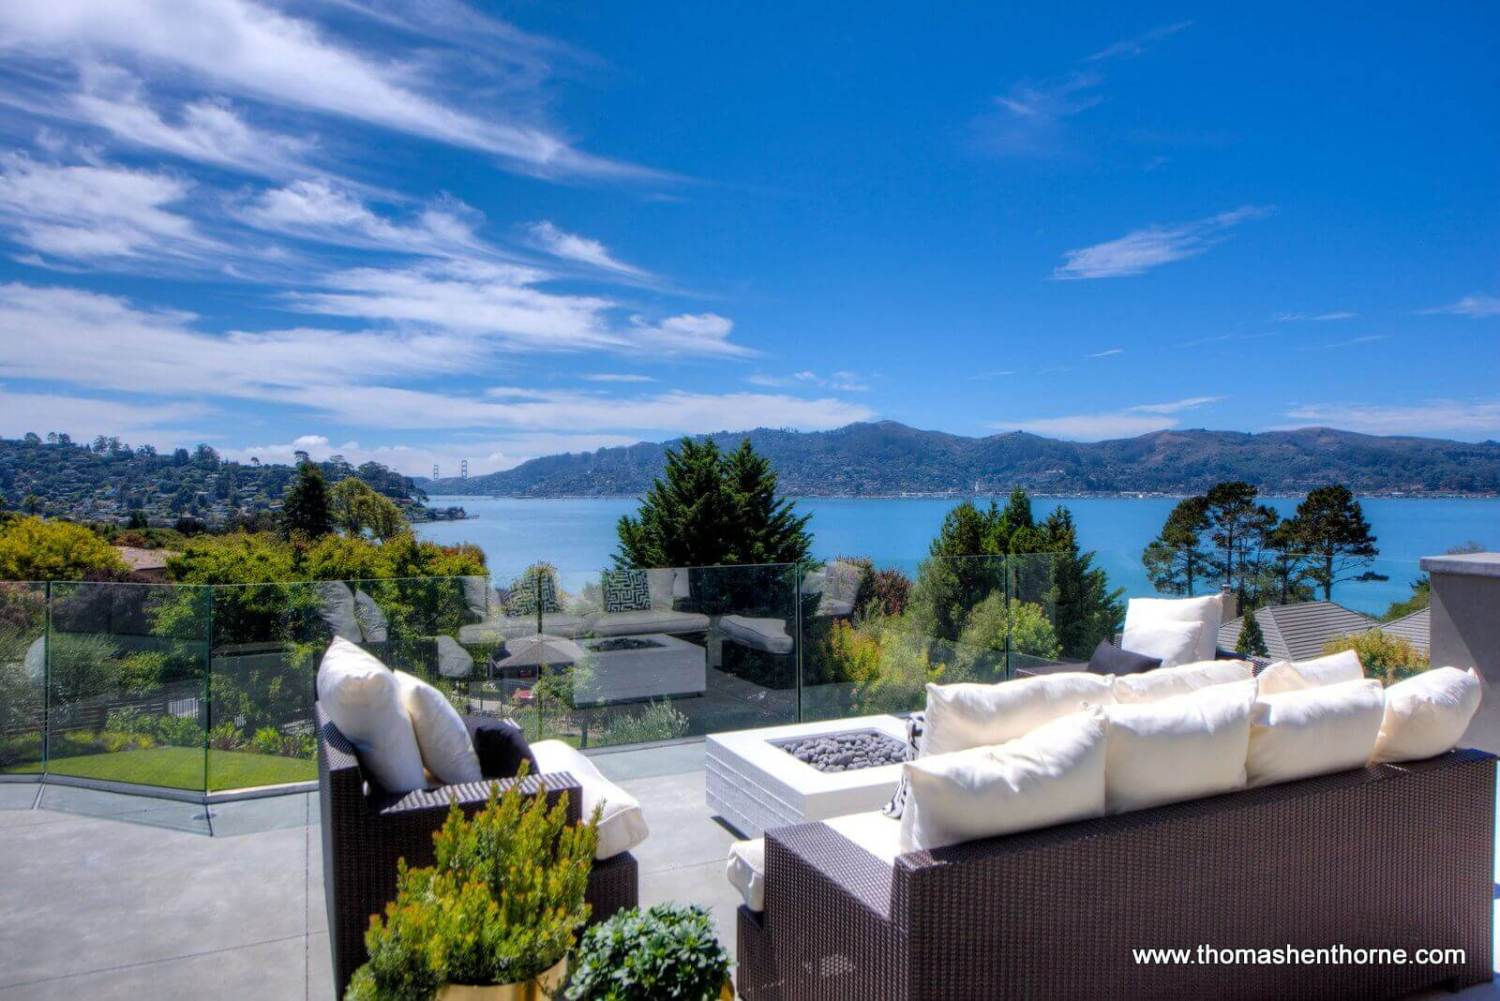 Terrace with view of bay